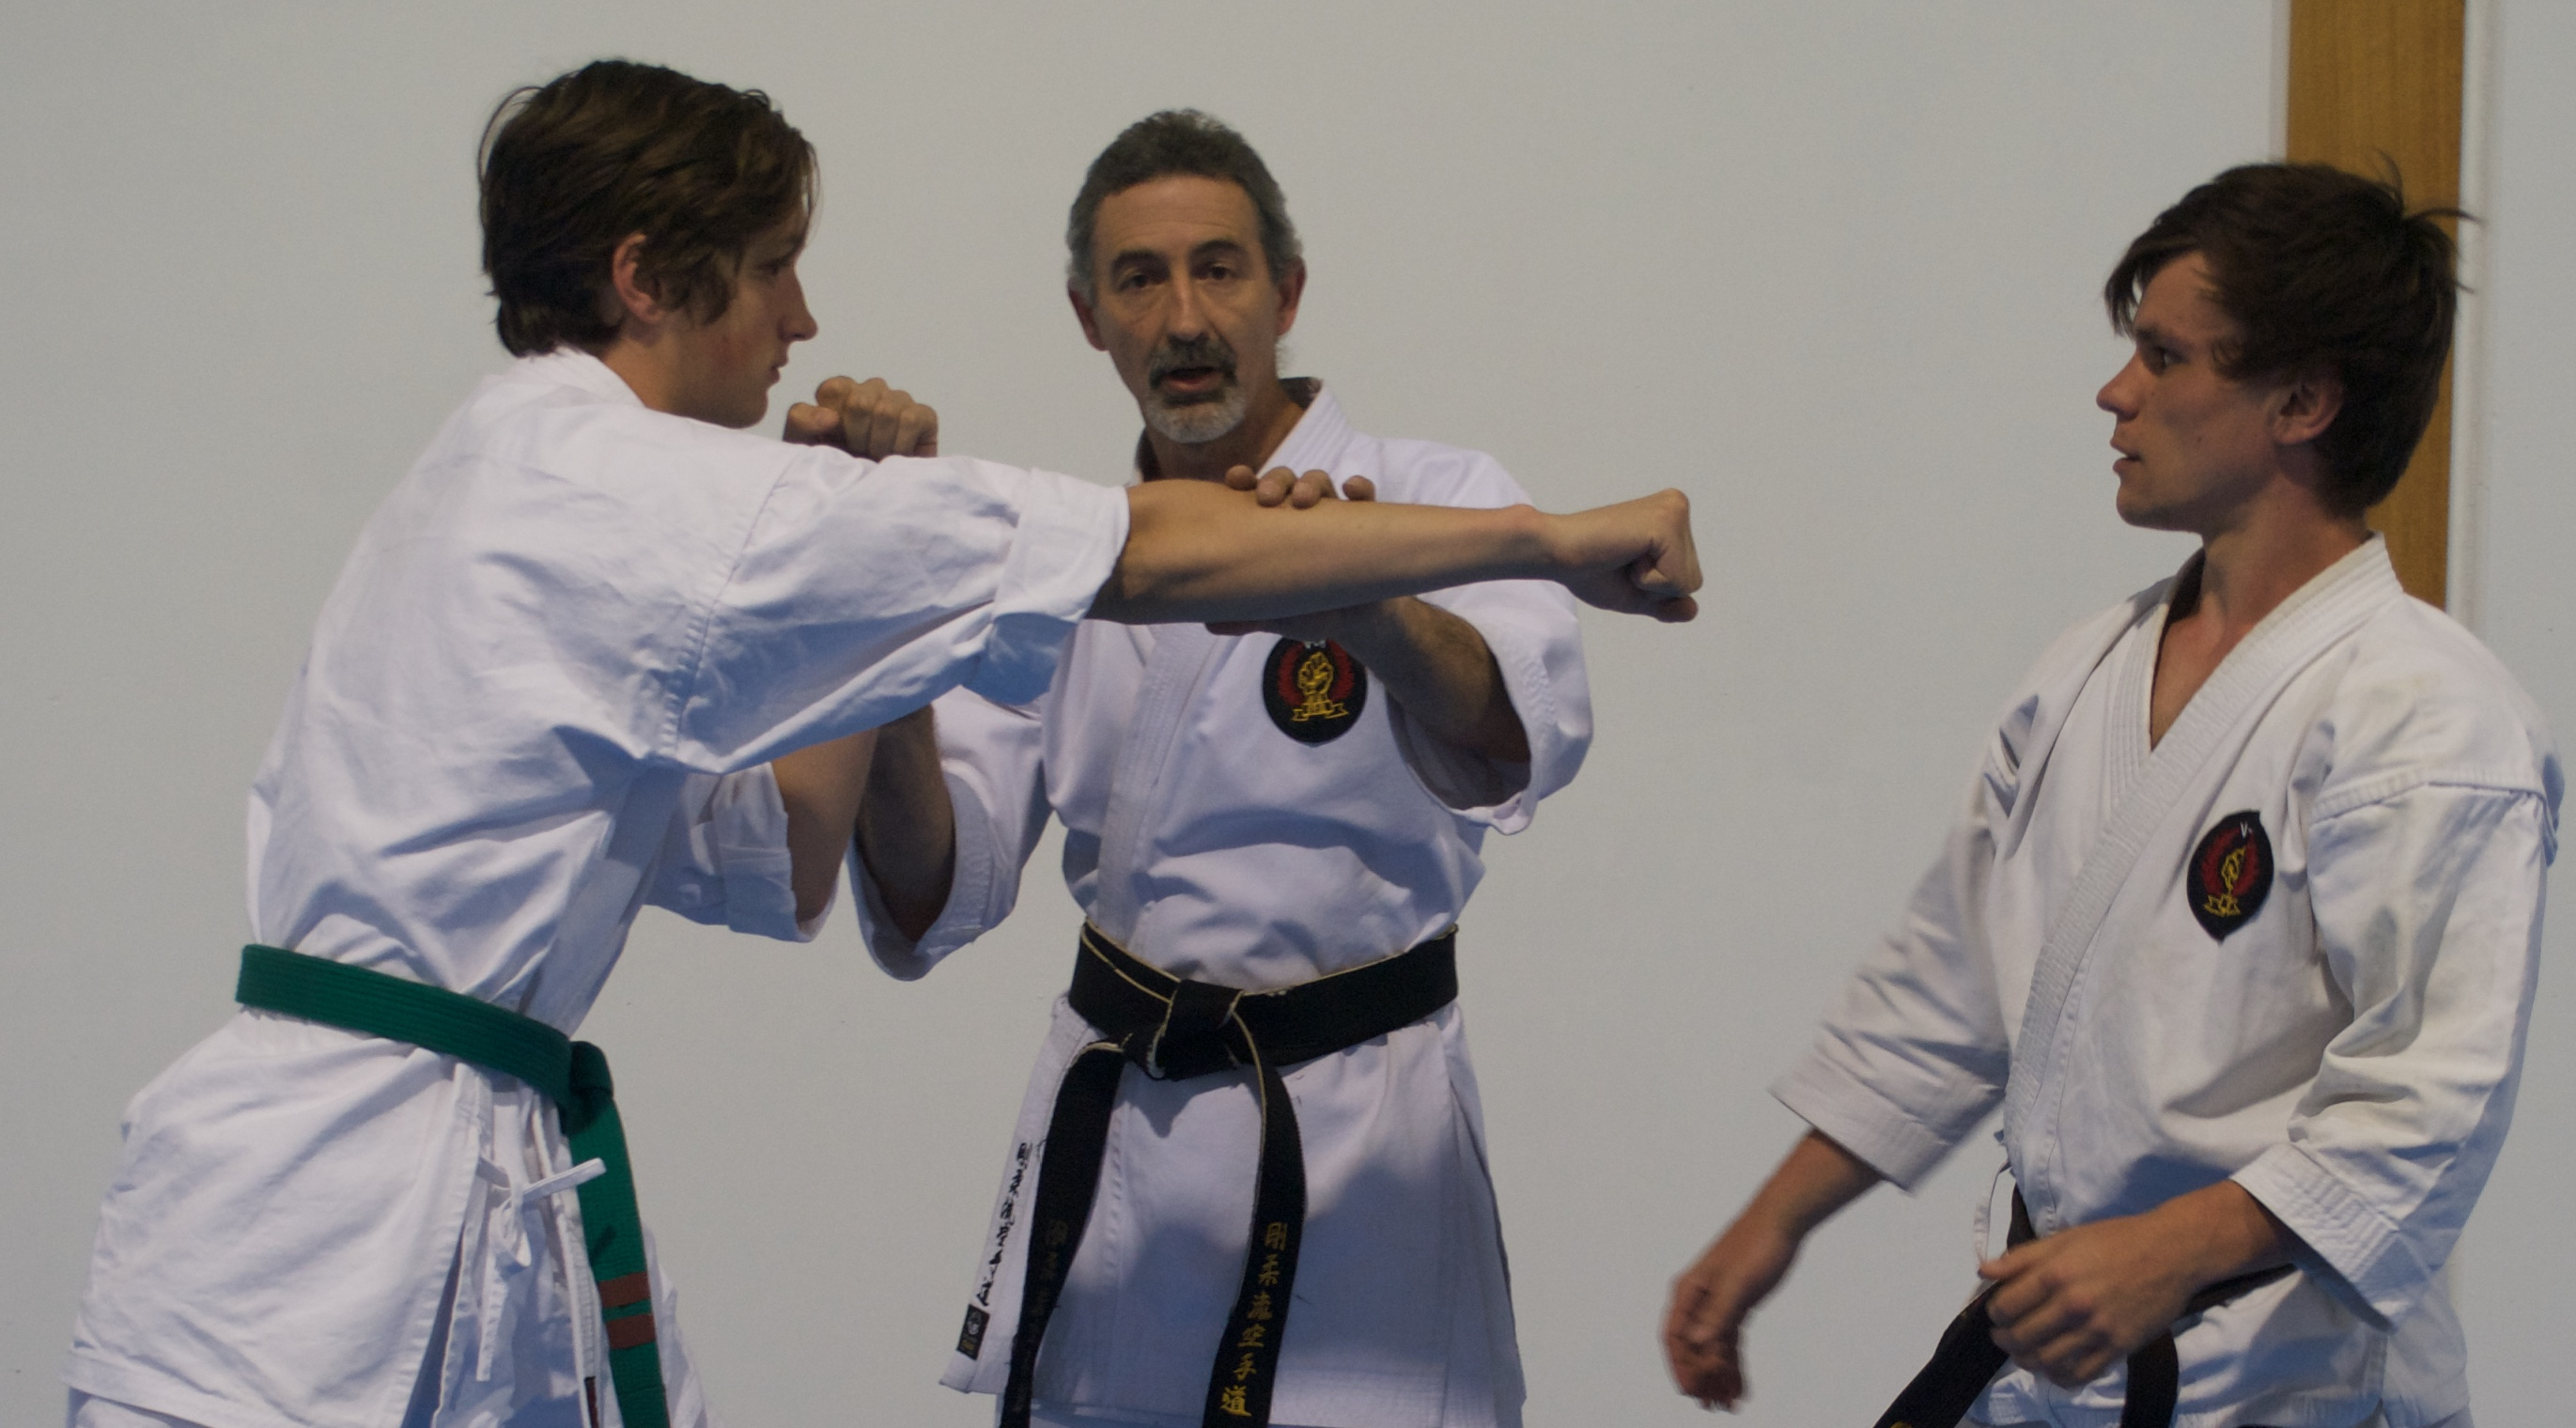 Senior karate training 8